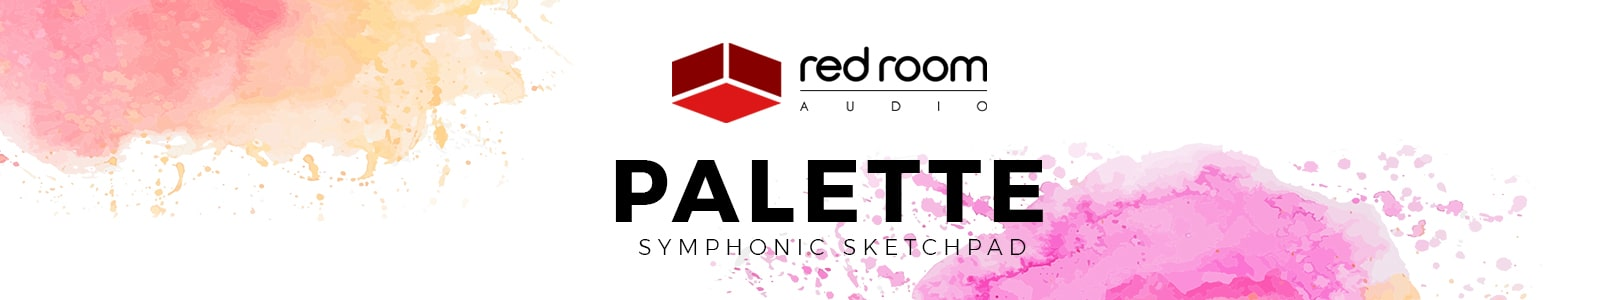 palette symphonic sketchpad by red room audio